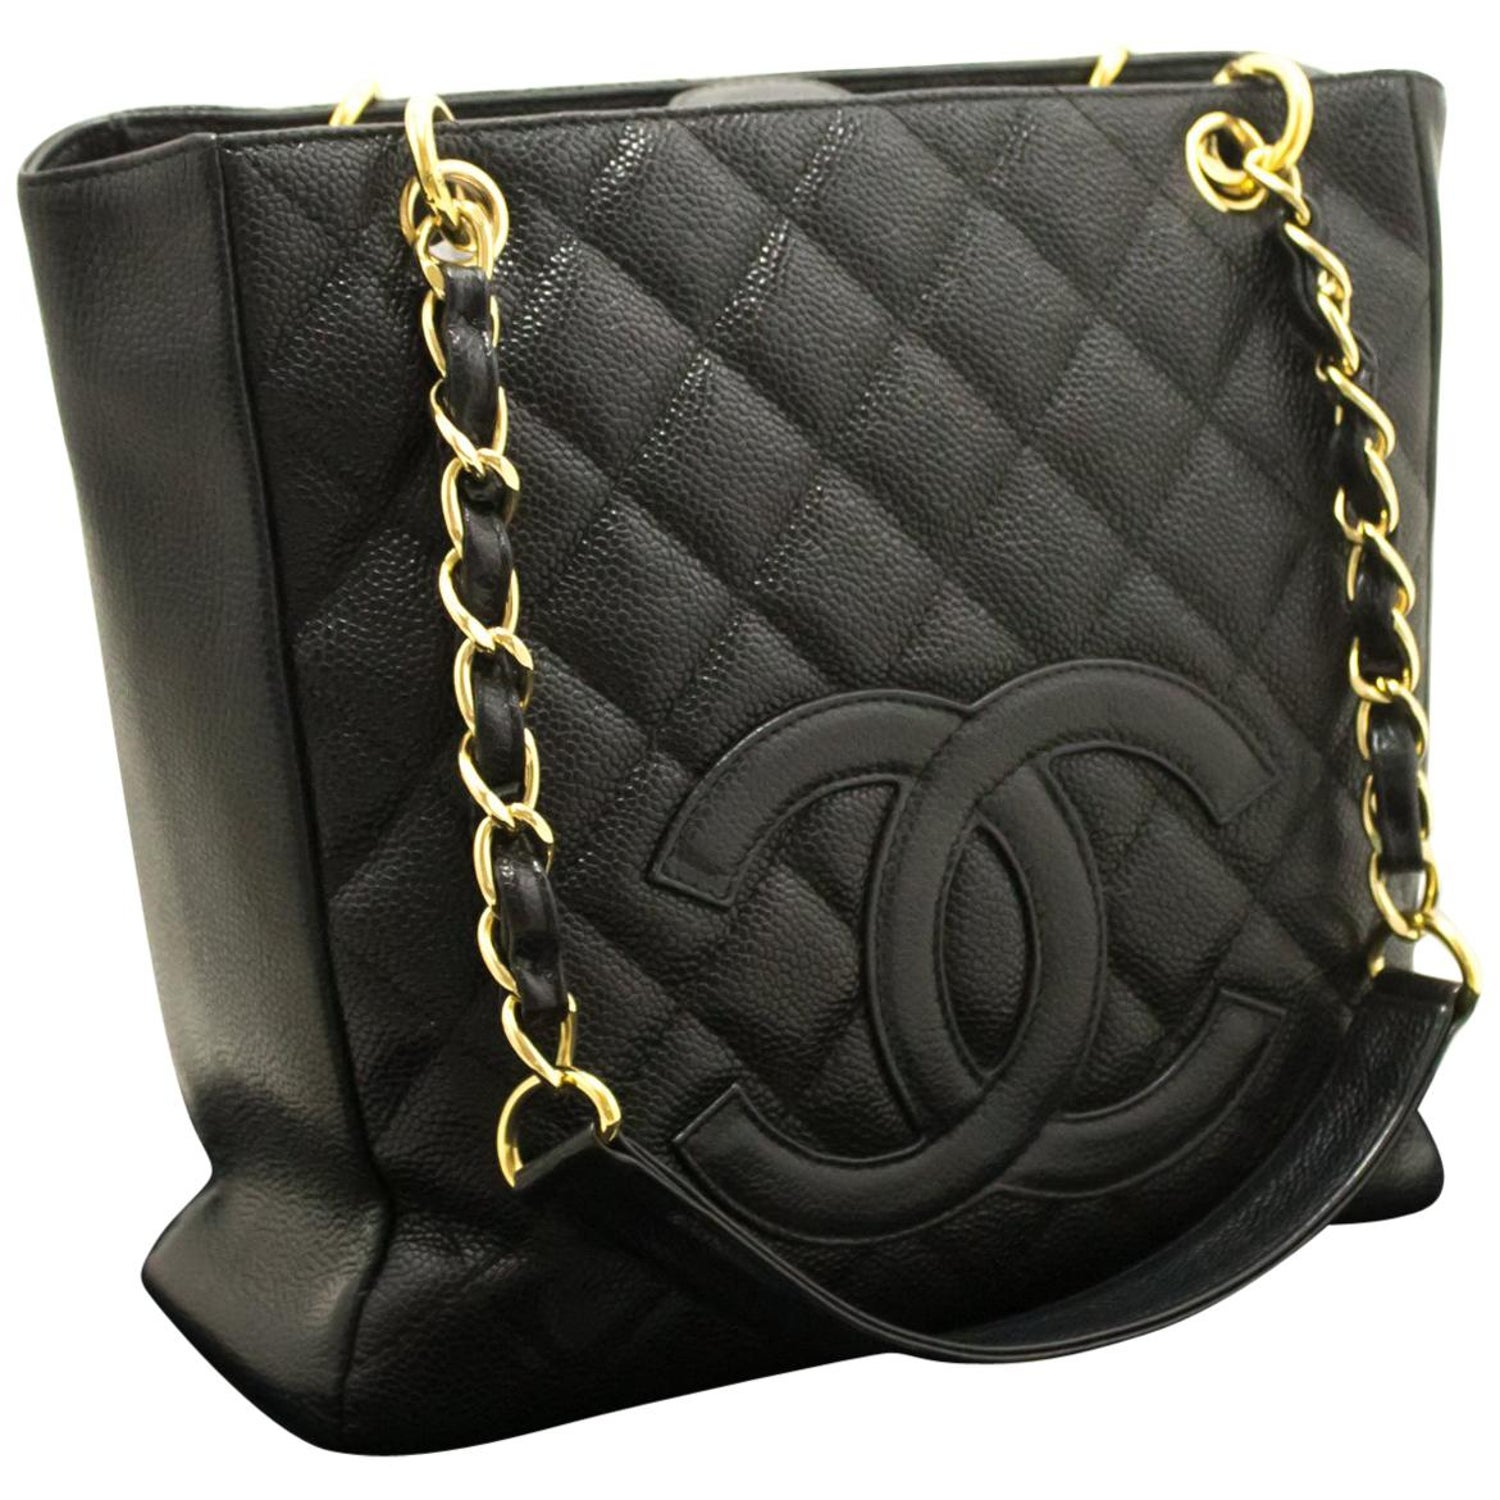 9f6f76024f93ae CHANEL Caviar PST Chain Shoulder Bag Shopping Tote Black Quilted at 1stdibs